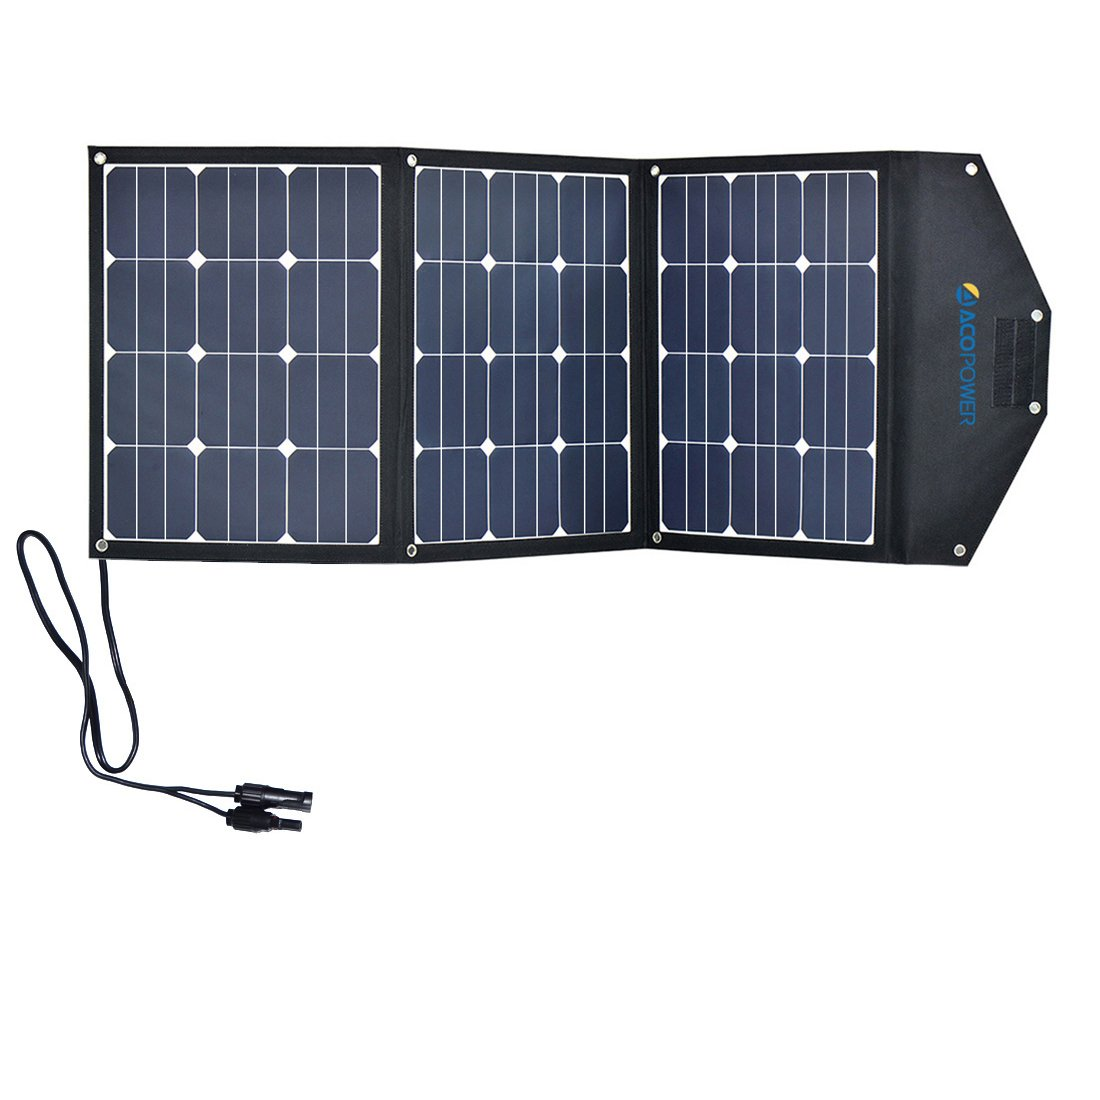 400Wh Generator and 105W Portable Solar Panel (New Arrival)